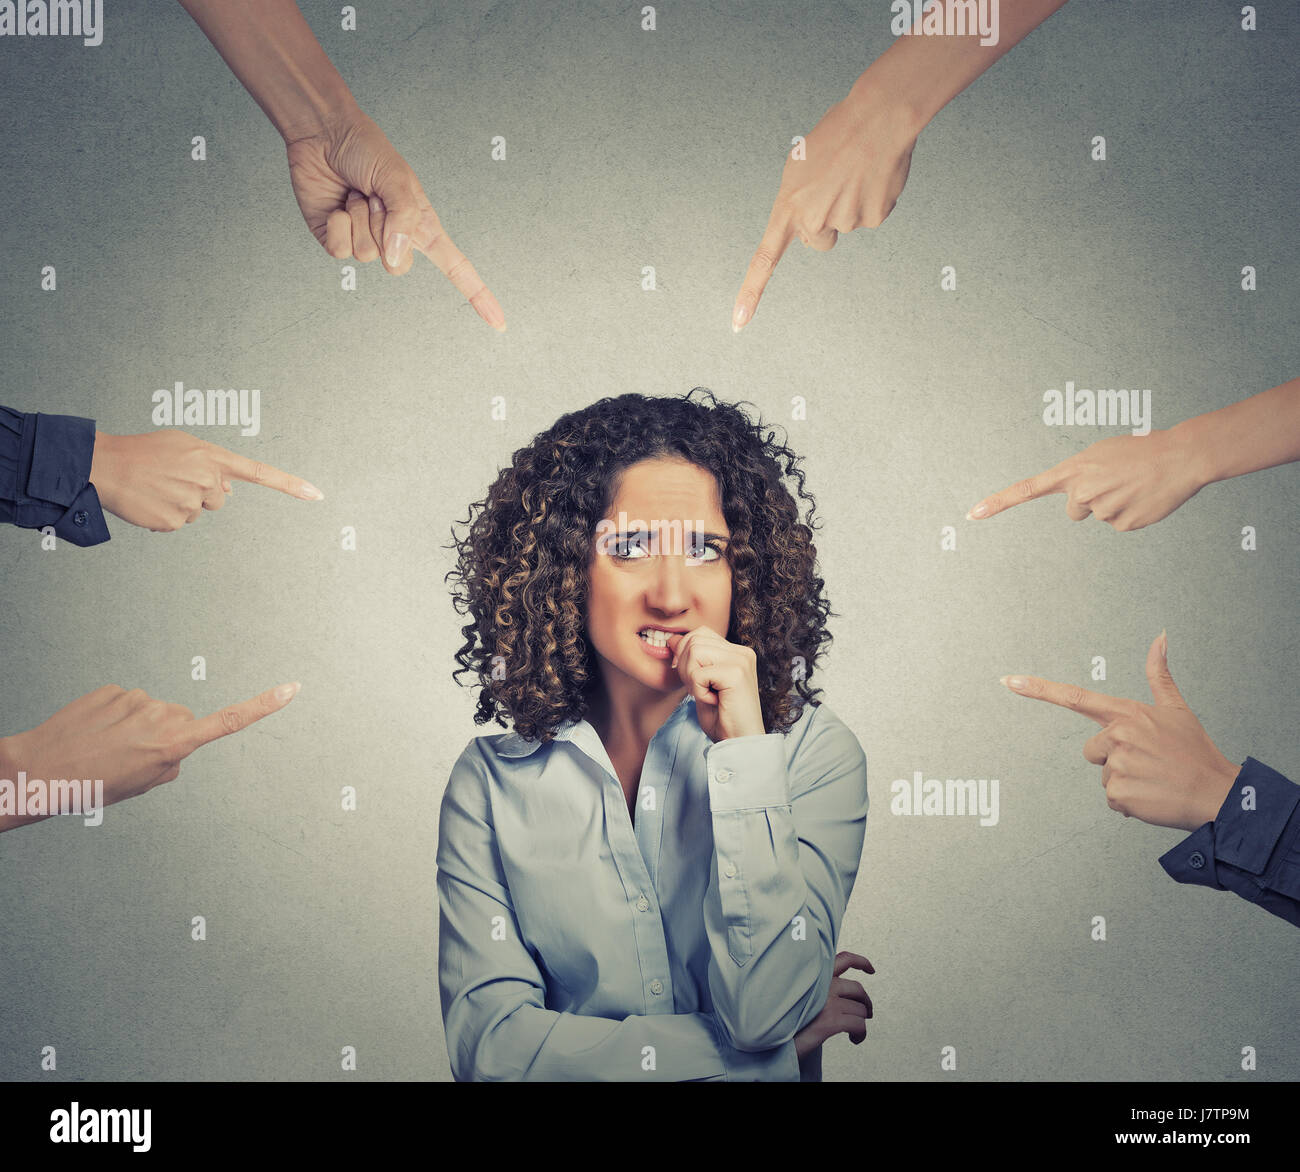 Concept of social accusation of guilty businesswoman many fingers pointing at isolated on grey office wall background. - Stock Image